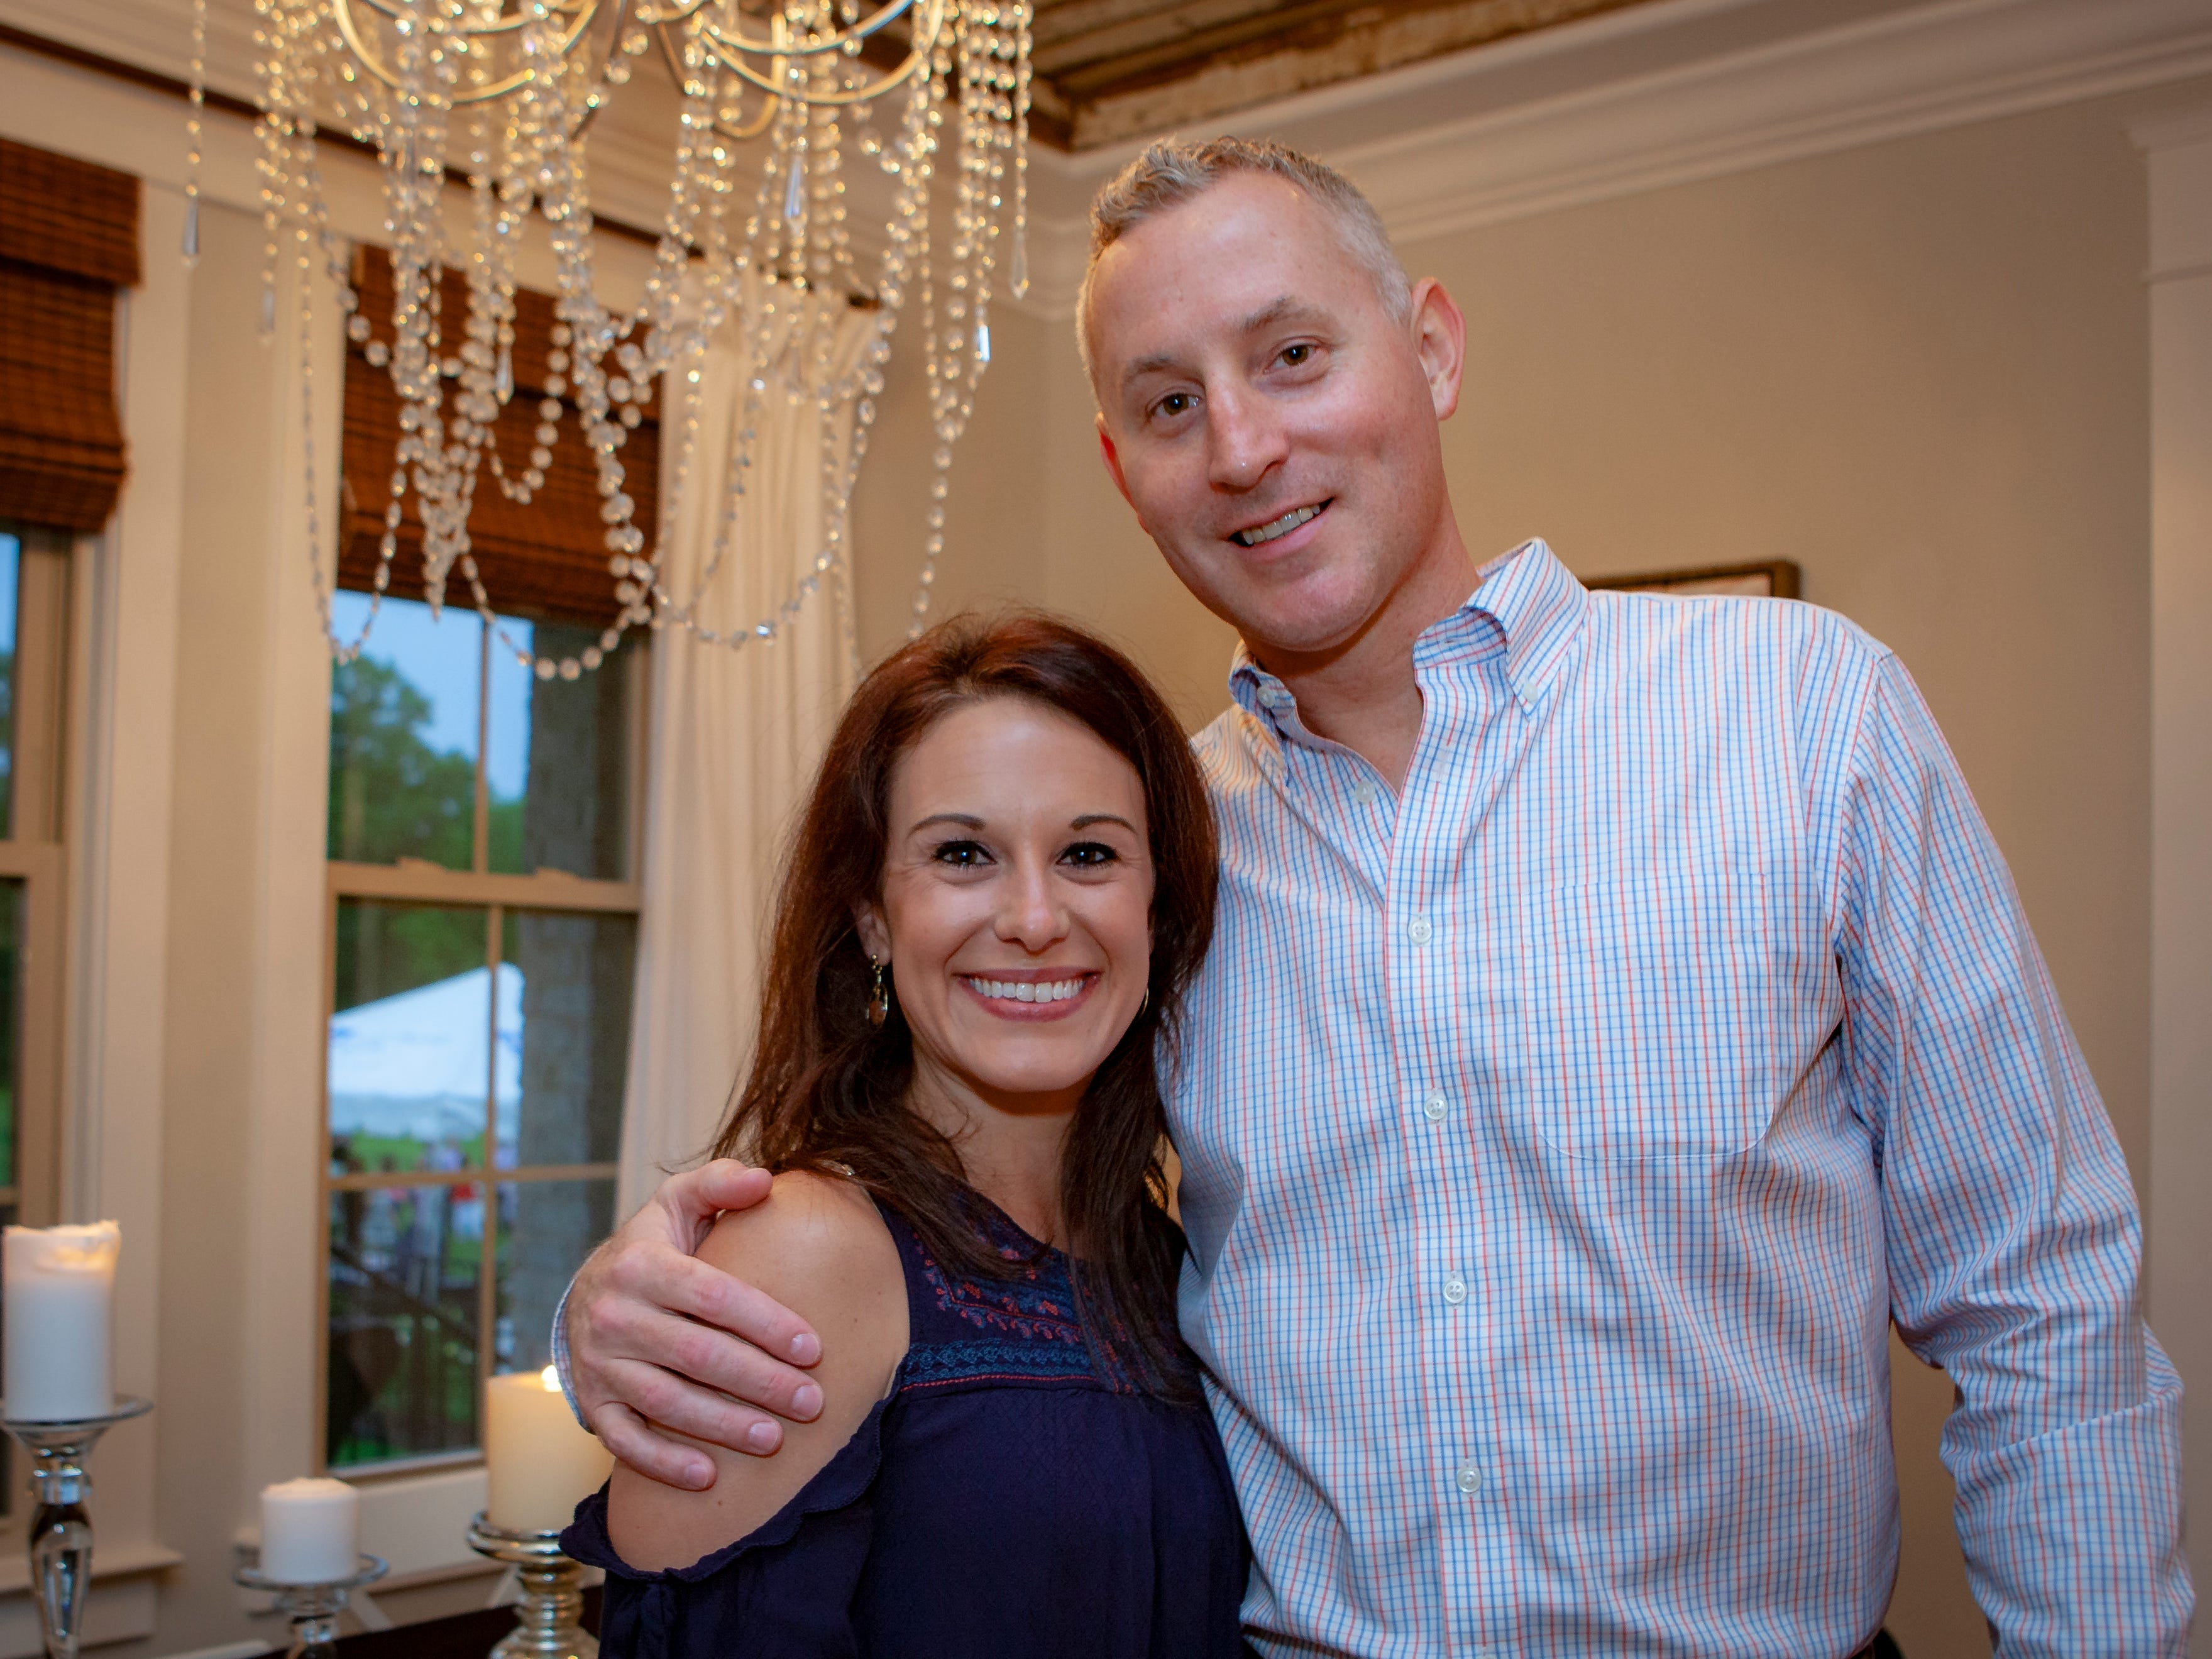 Meagan Altman and Keith Kline enjoyed a Cajun feast under the stars at United Way's Red, White and Bayou, held Friday, May 10, 2019 at the home of Jimmy & Nikkole Aho.